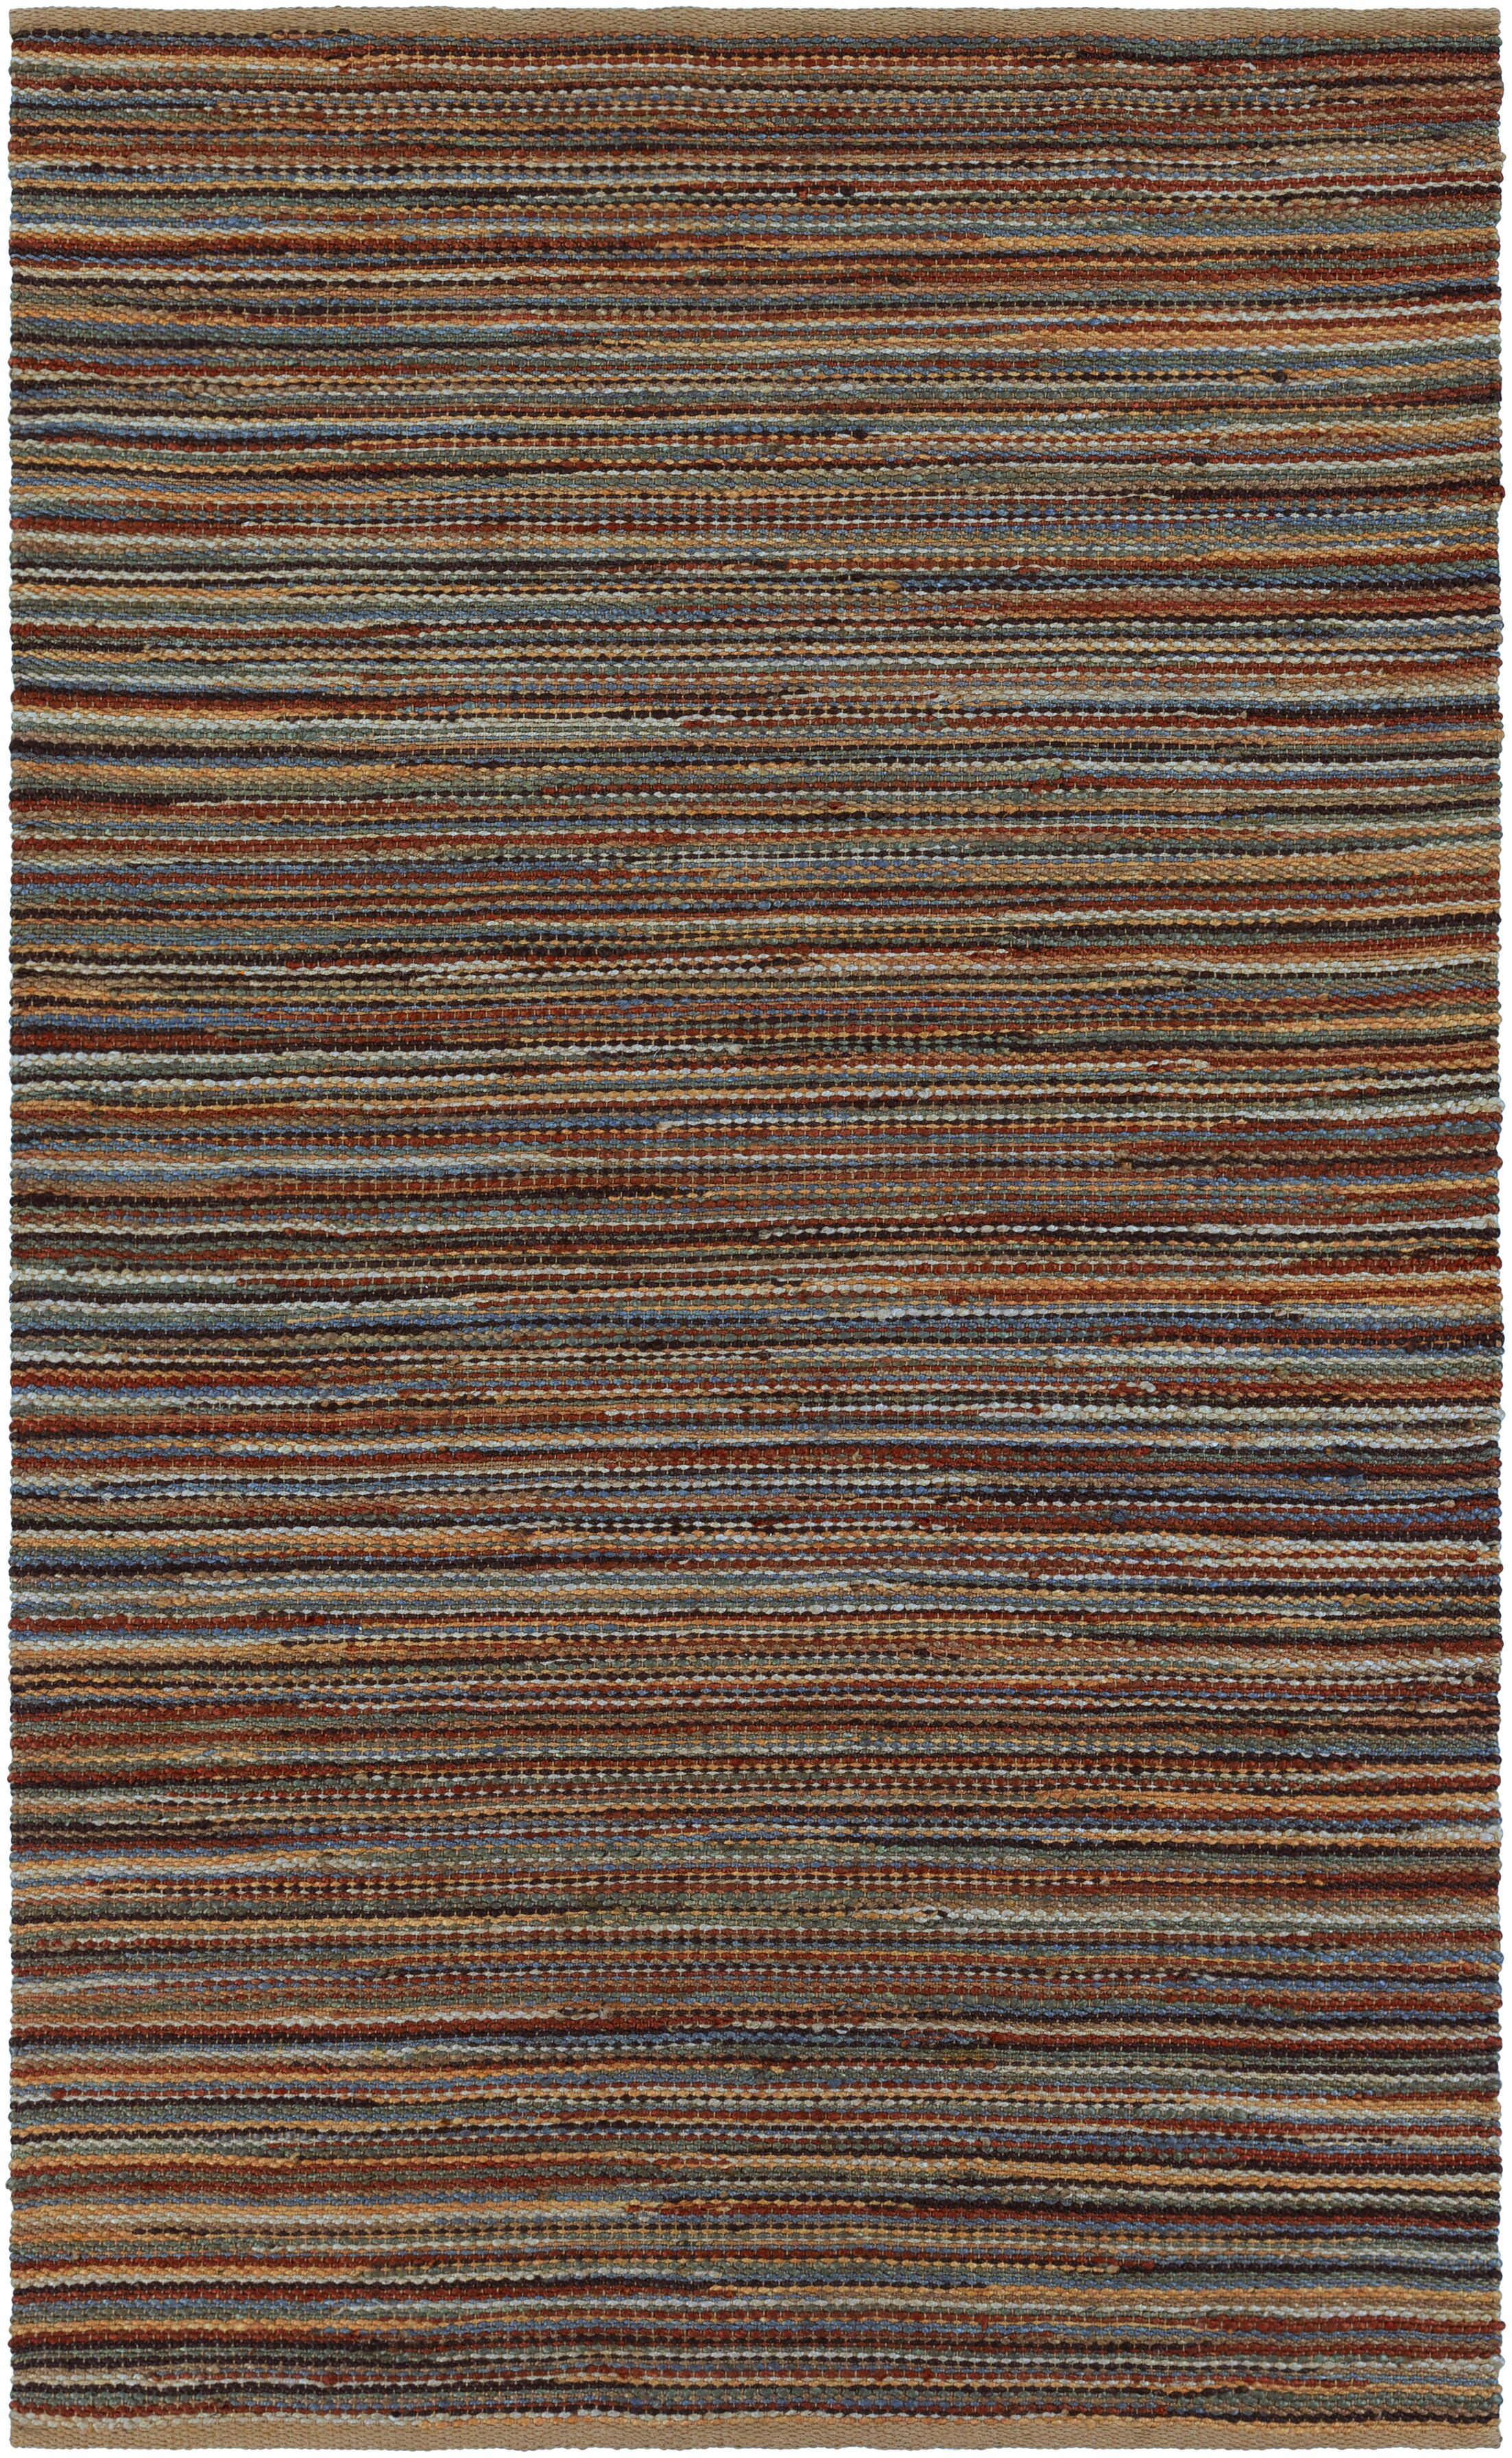 Pitcher Hand-Woven Red/Blue Area Rug Rug Size: Rectangle 5' x 7'6